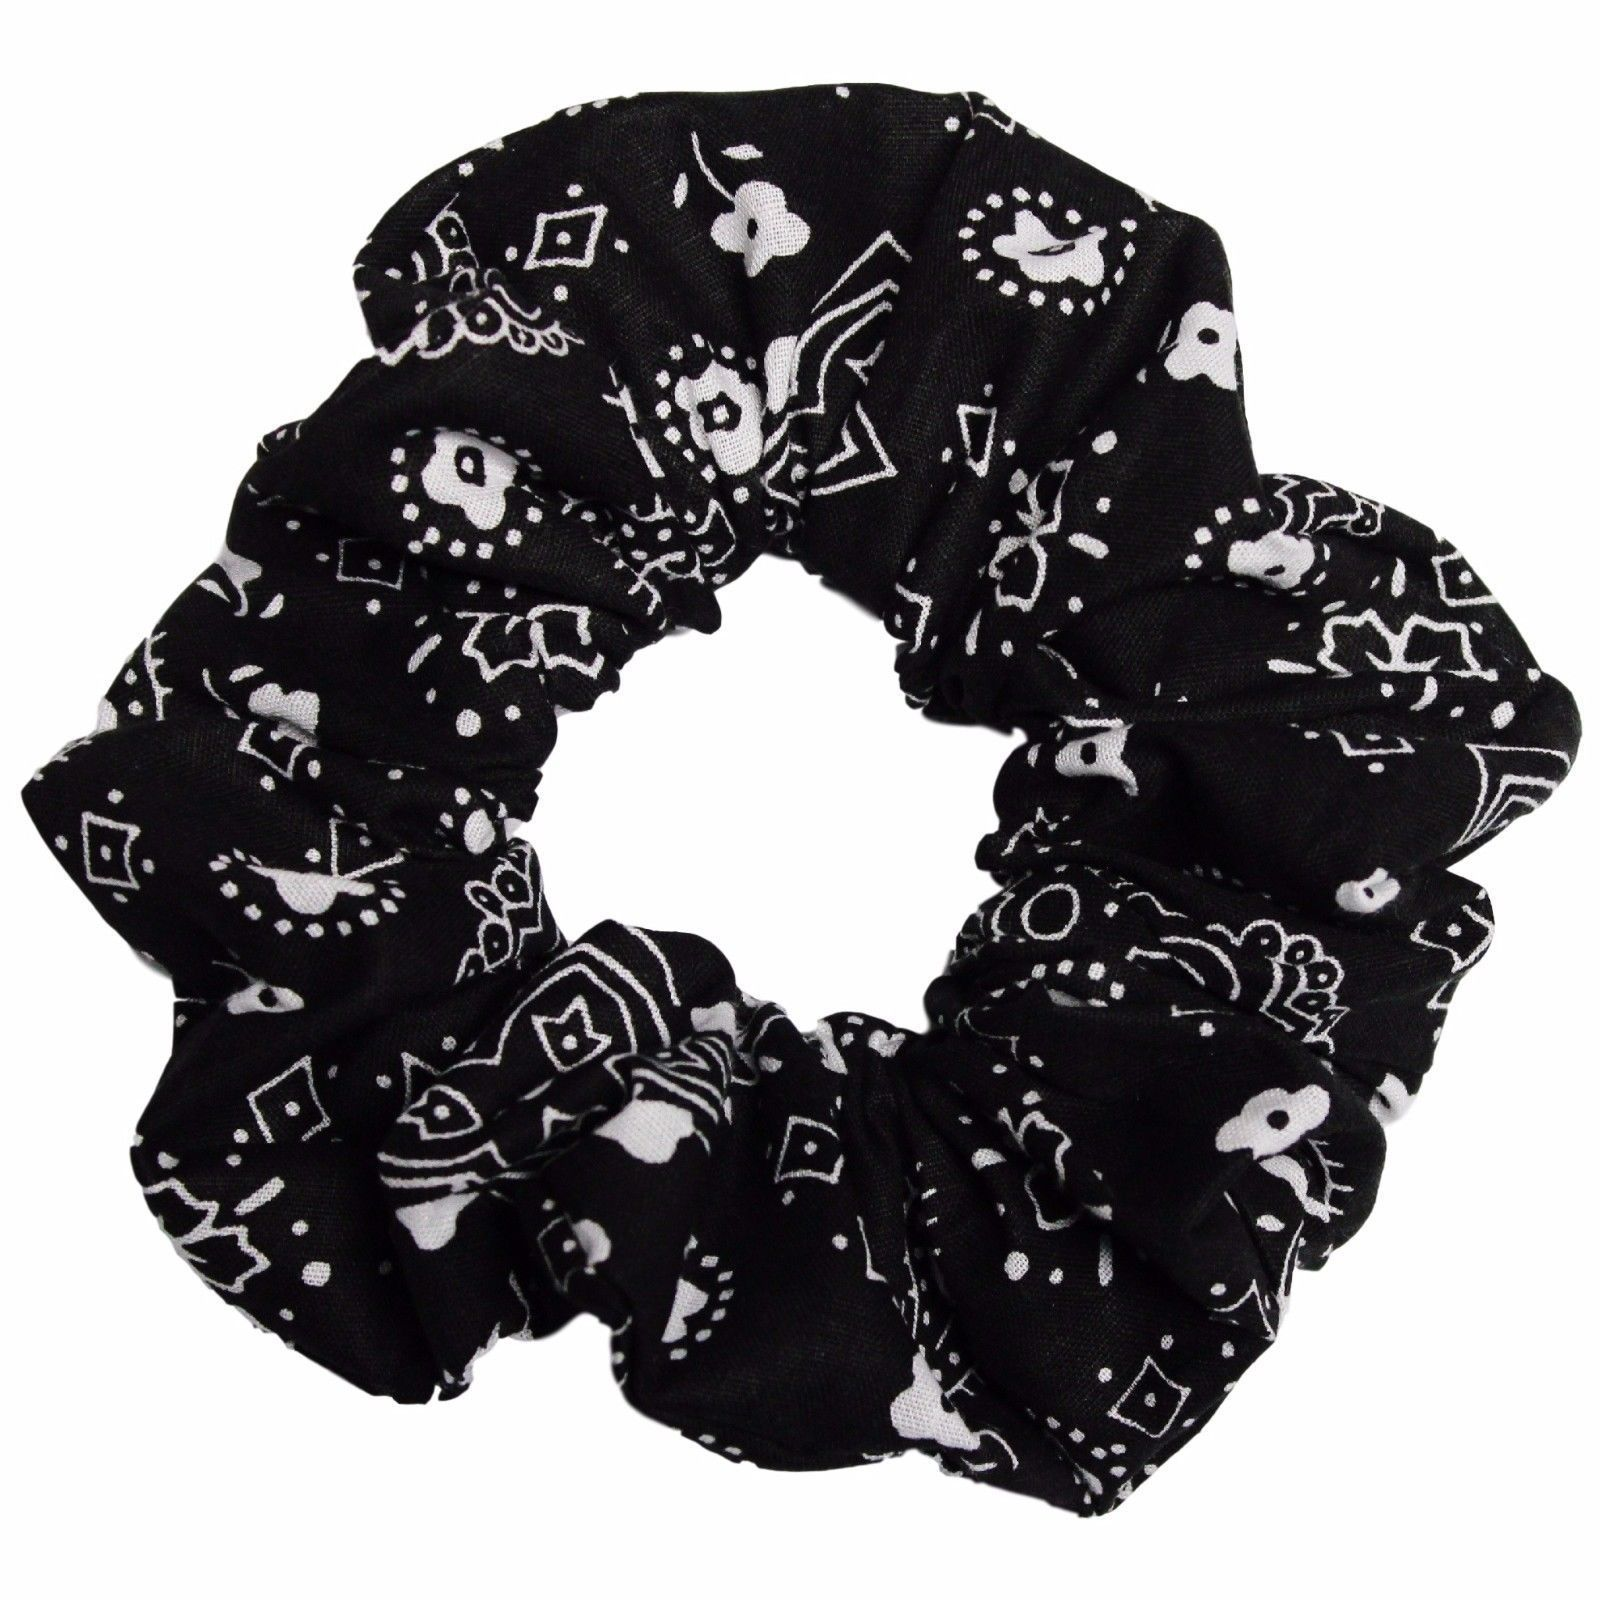 Red Black White Volleyballs Elastic Hair Accessories Ties Ponytail Scrunchies